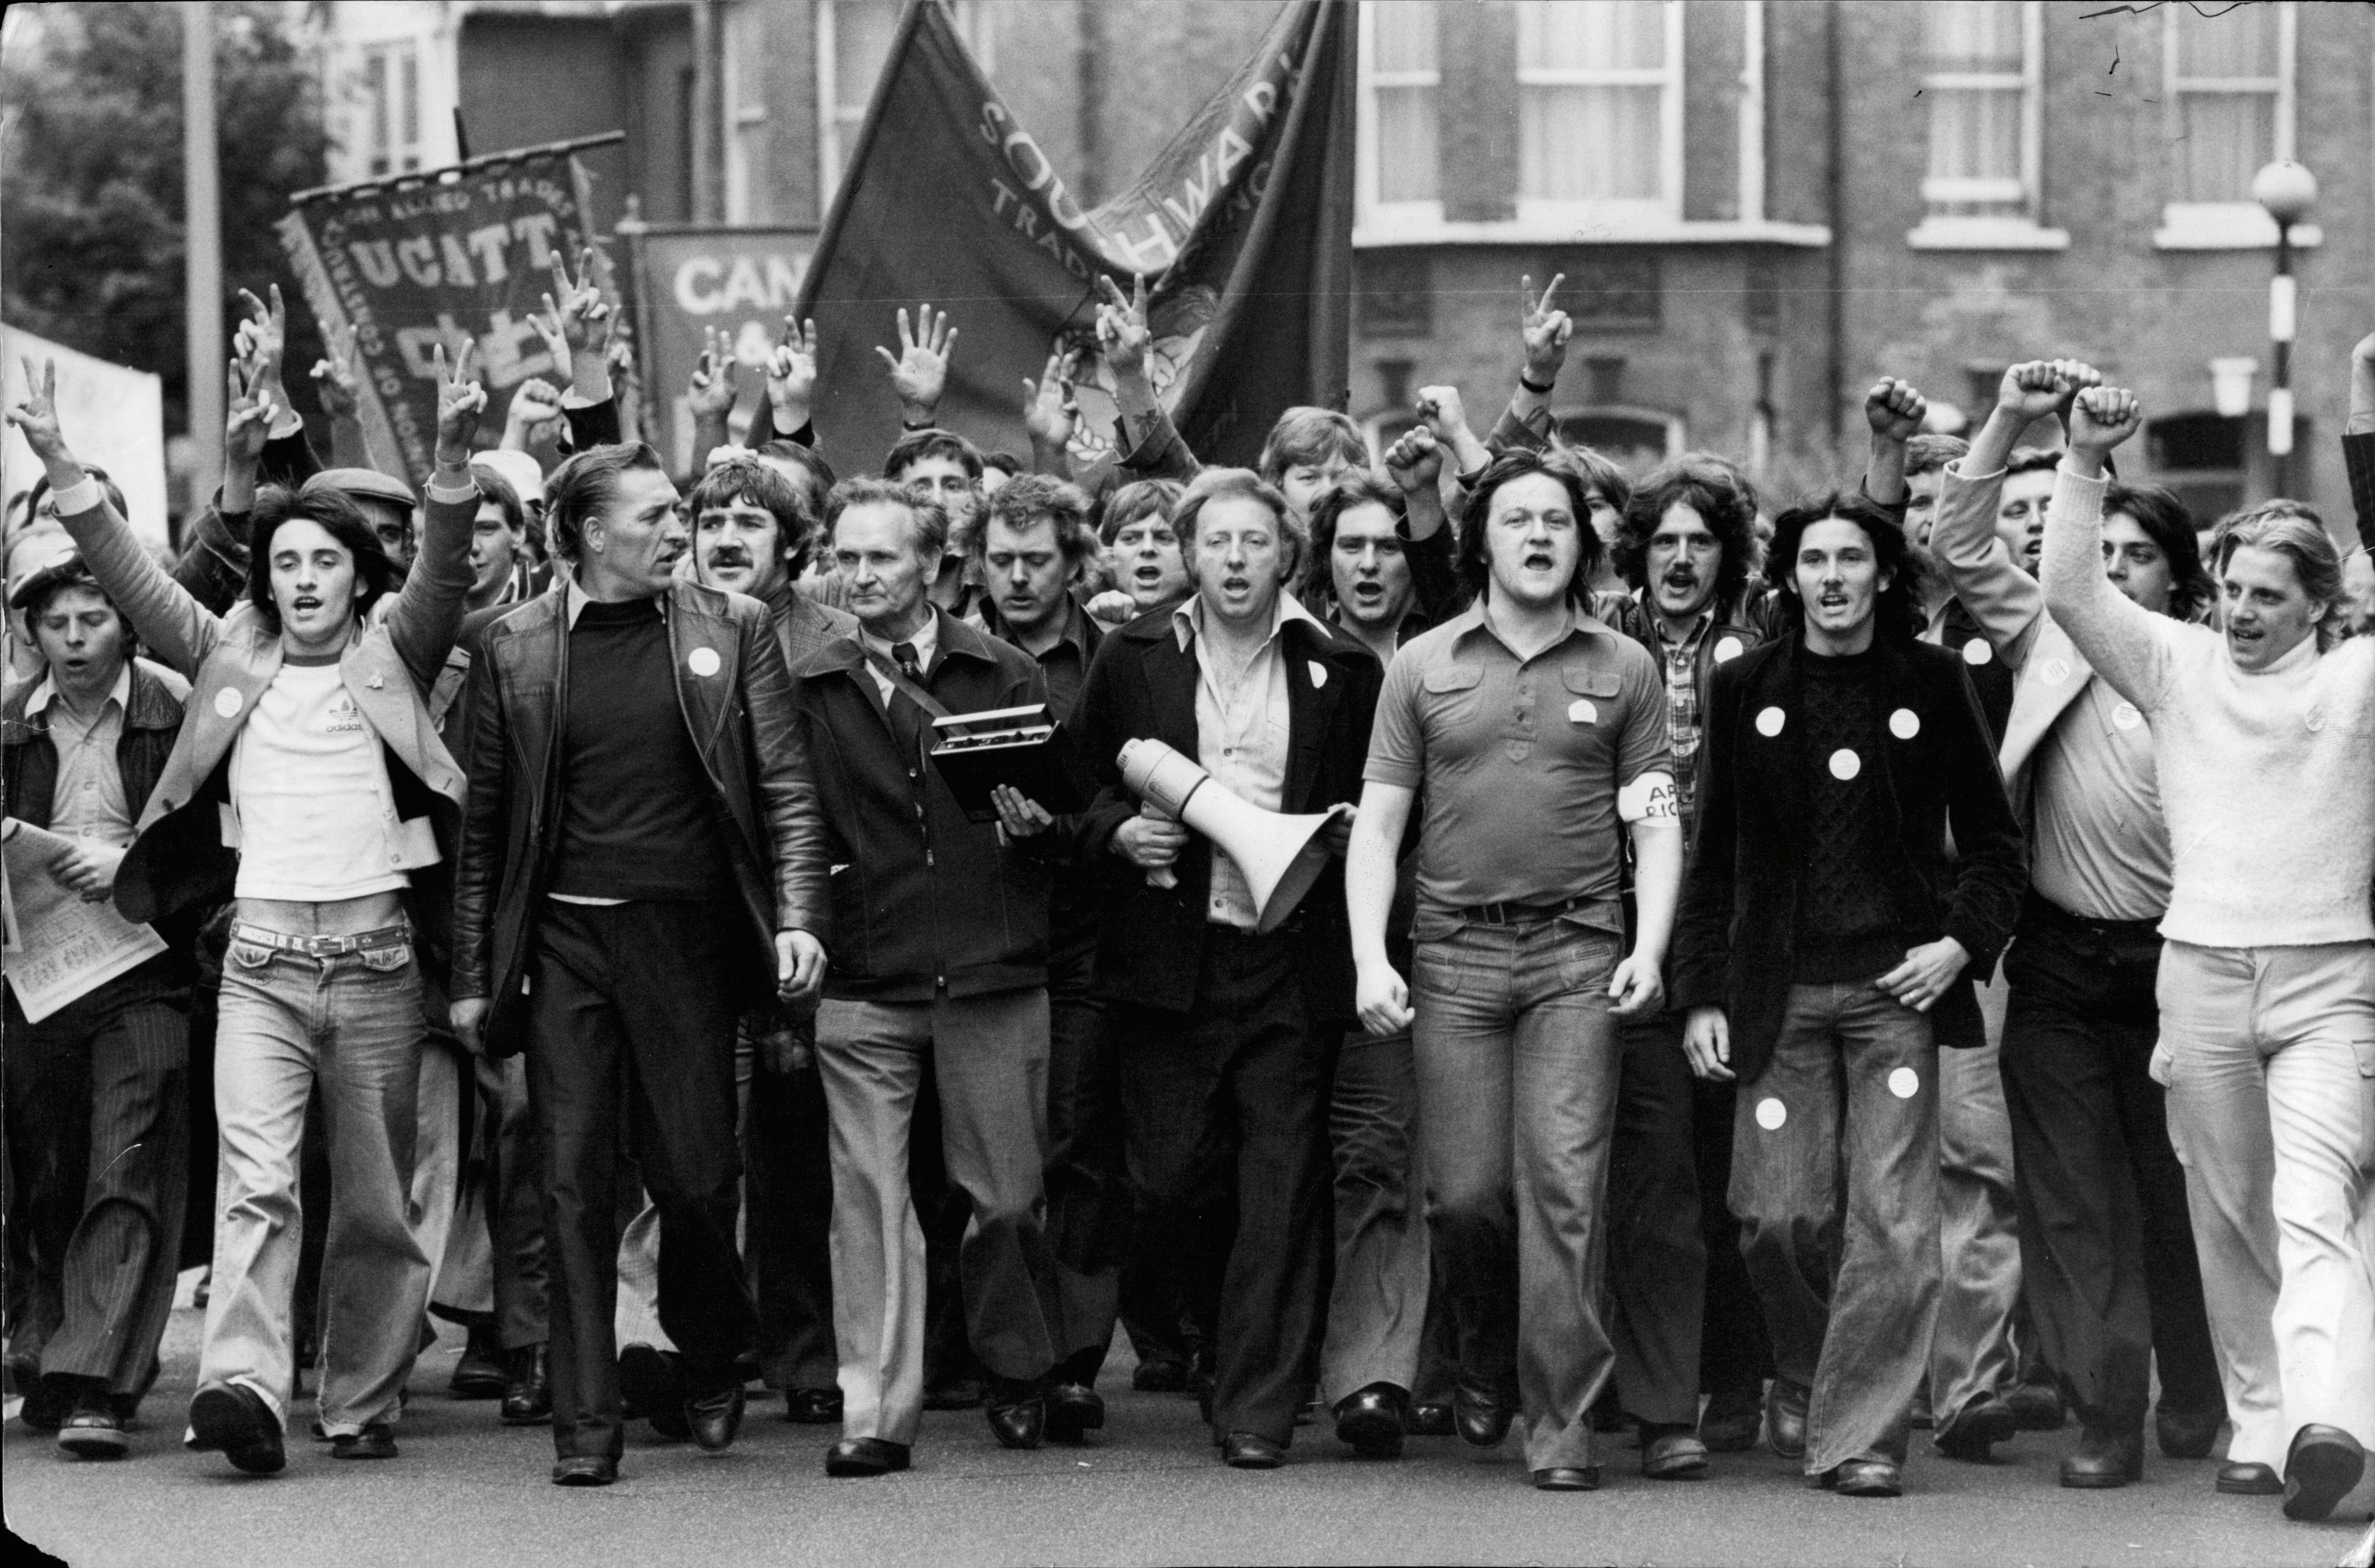 Arthur Scargill Leads The March Of Grunwick Film Studio Workers In London During Their Strike